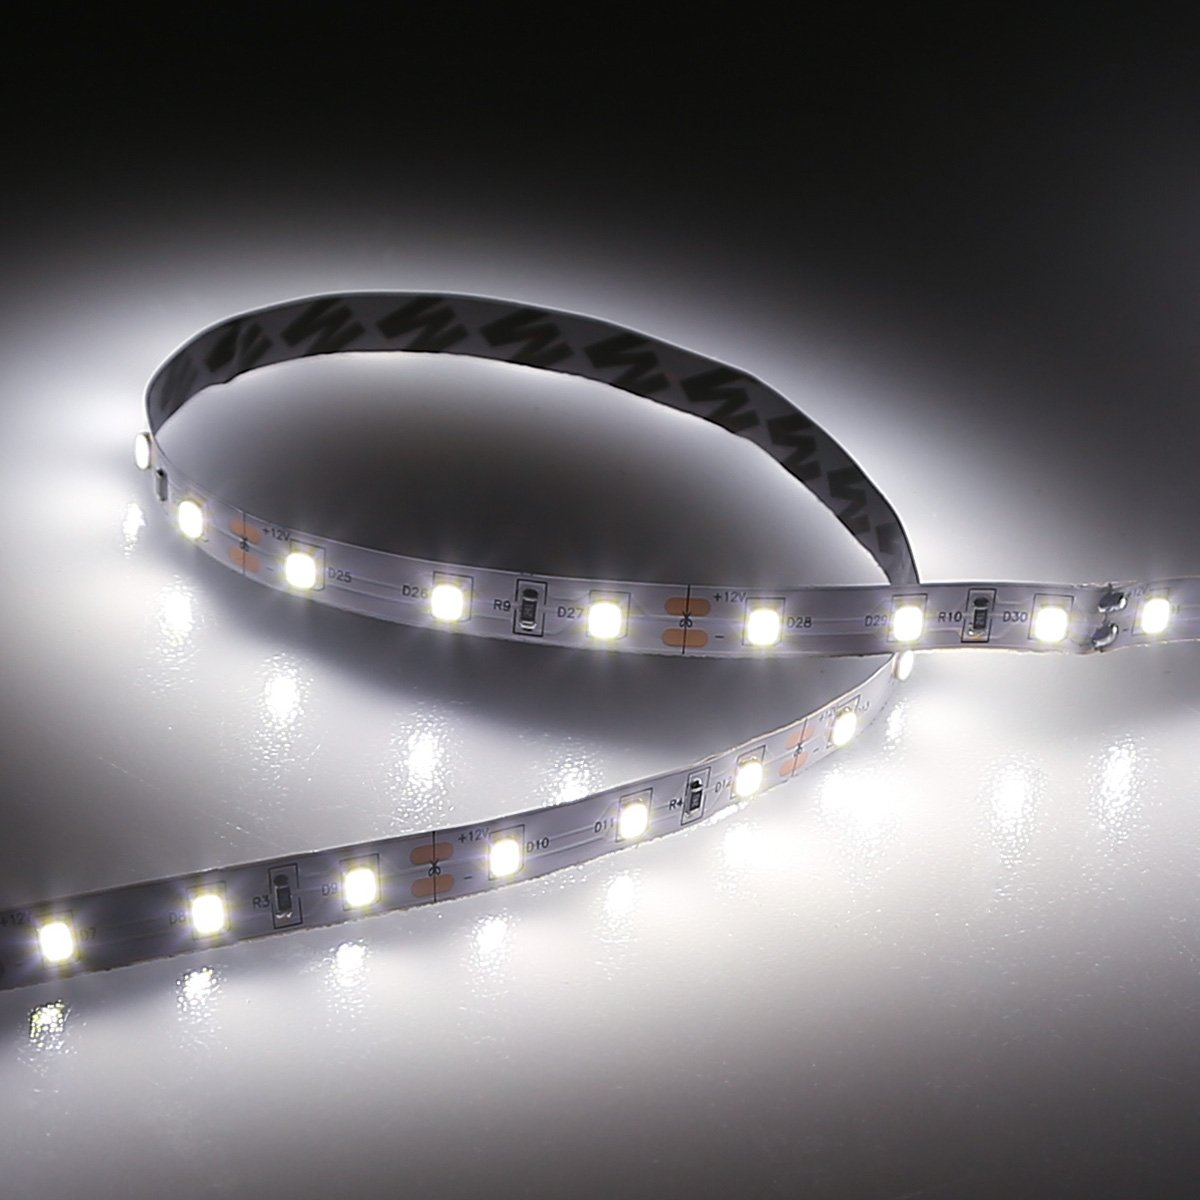 Amazon le 164ft led flexible light strip 300 units smd 2835 amazon le 164ft led flexible light strip 300 units smd 2835 leds 12v dc non waterproof light strips led ribbon diy christmas holiday home kitchen mozeypictures Choice Image